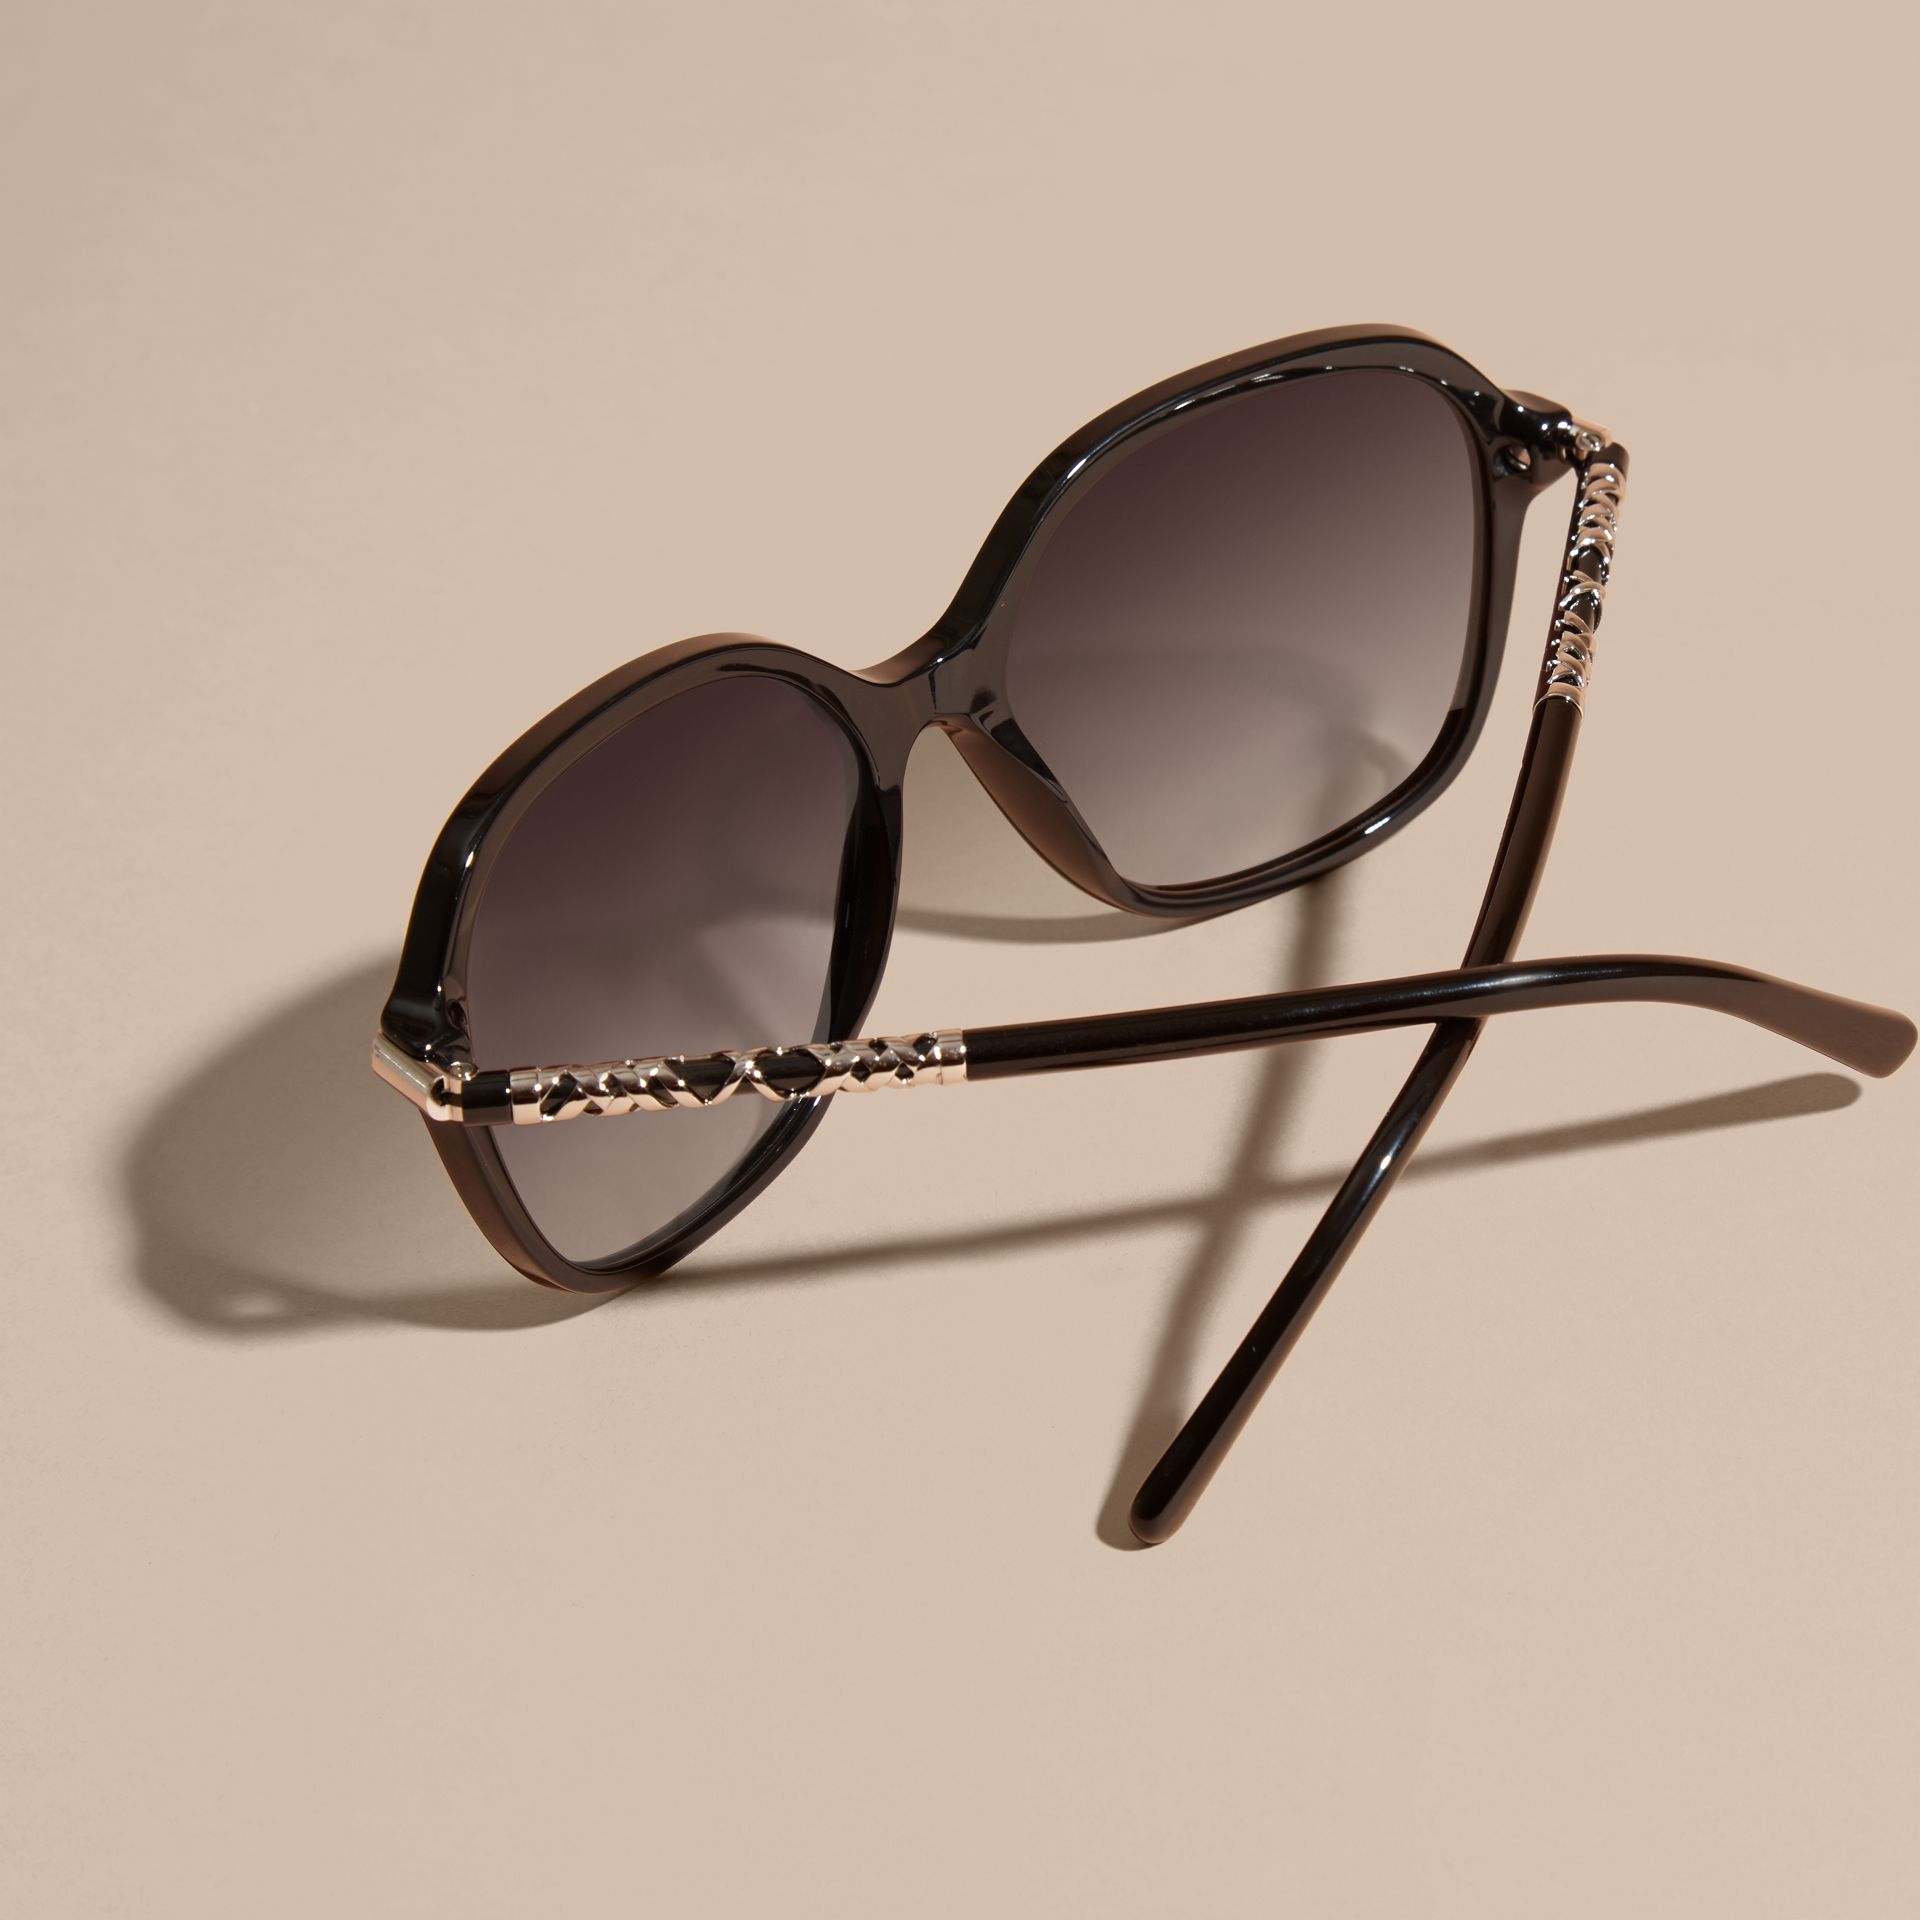 Black Check Detail Round Frame Sunglasses Black - gallery image 3